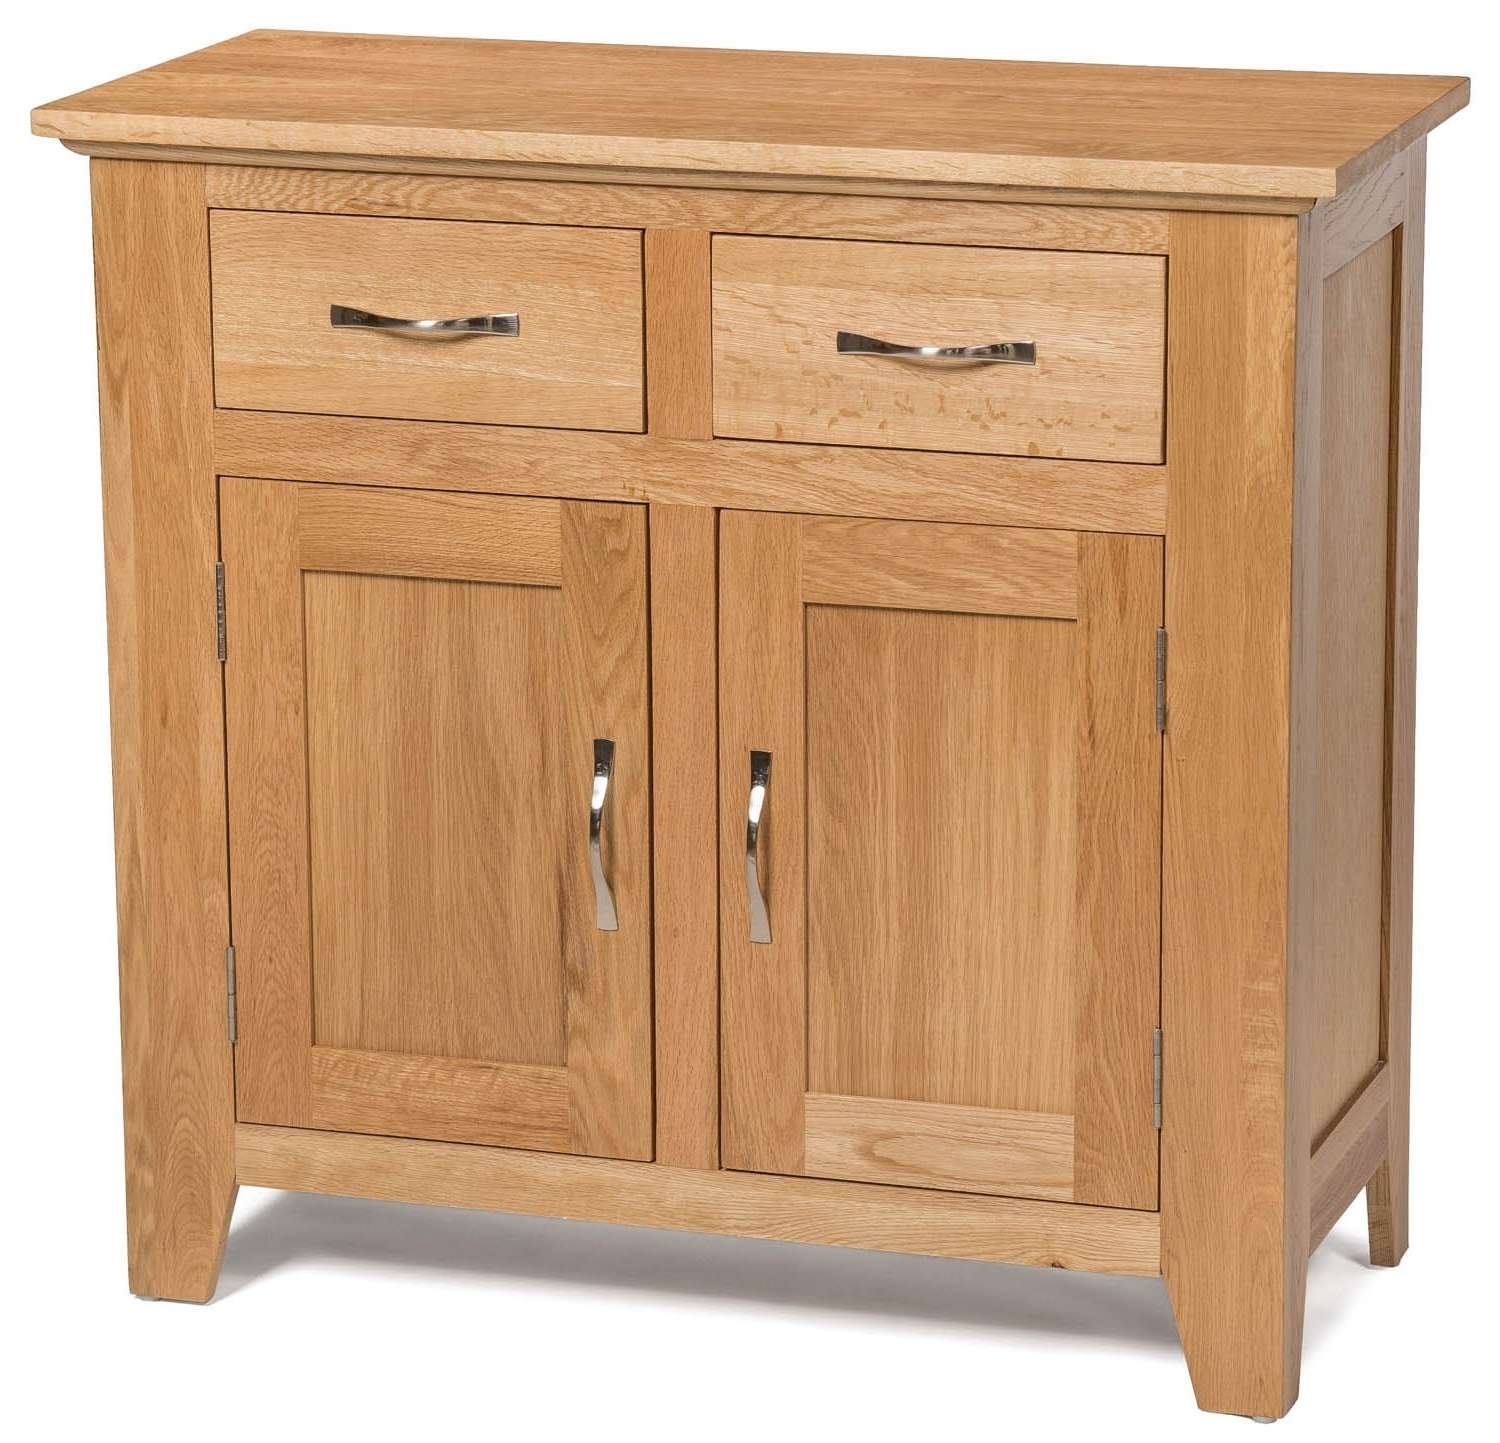 Camberley Oak Small 2 Door 2 Drawer Sideboard | Hallowood Pertaining To 2 Door Sideboards (View 4 of 20)